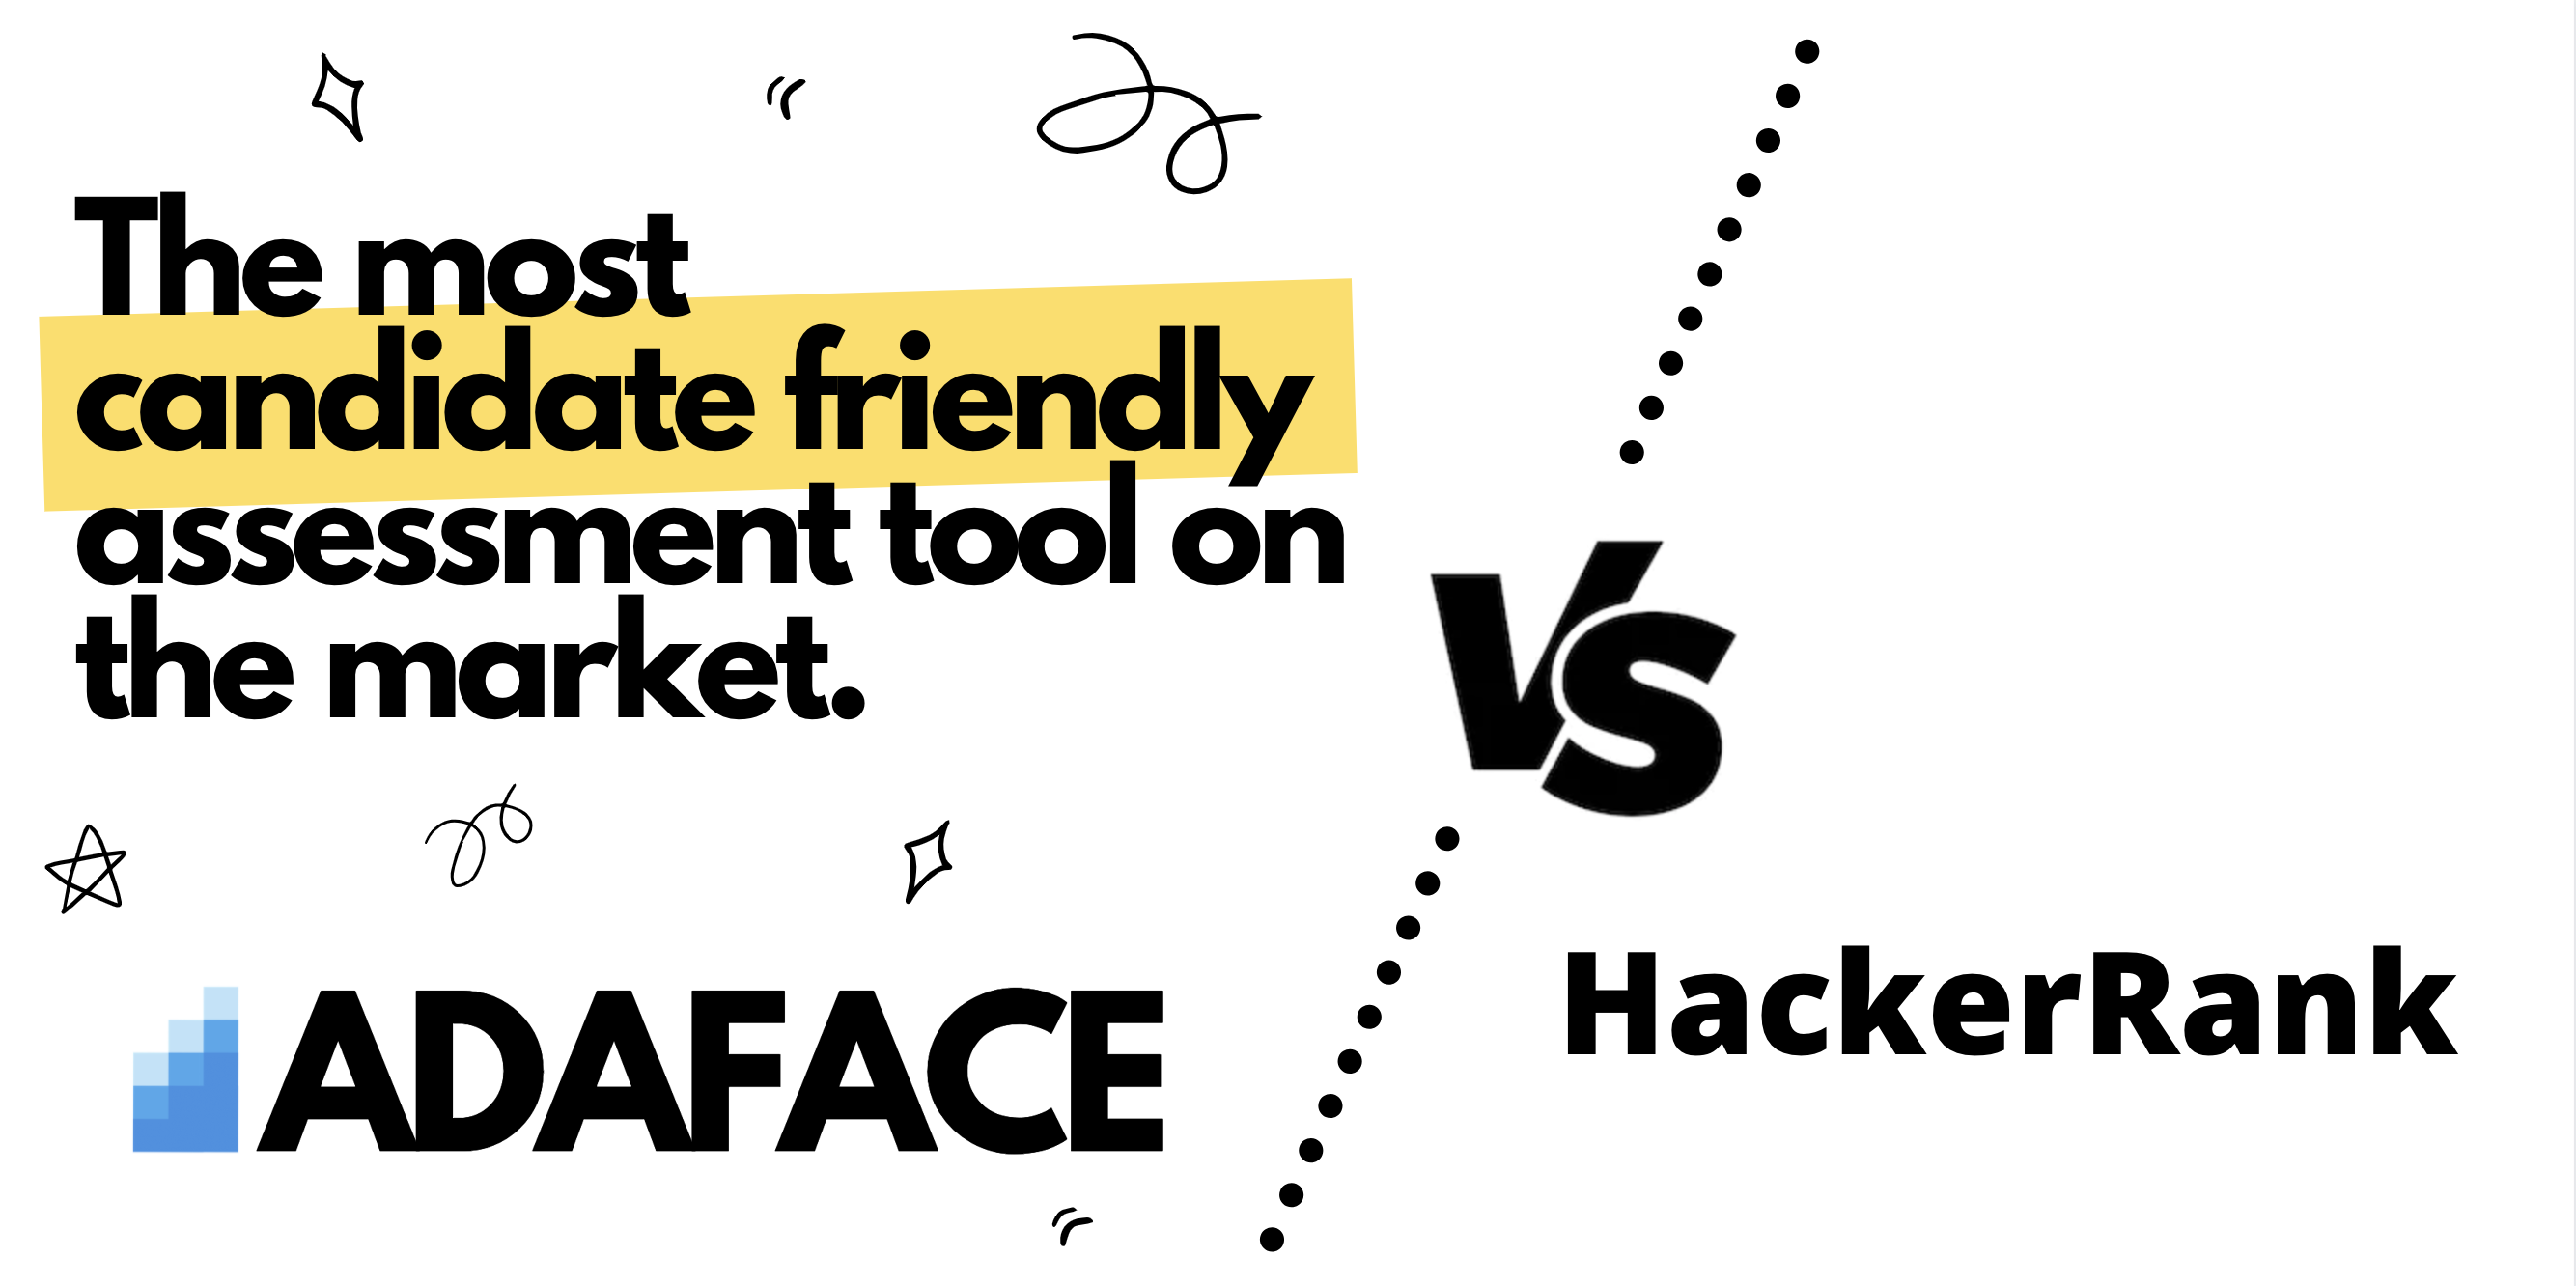 HackerRank vs Adaface